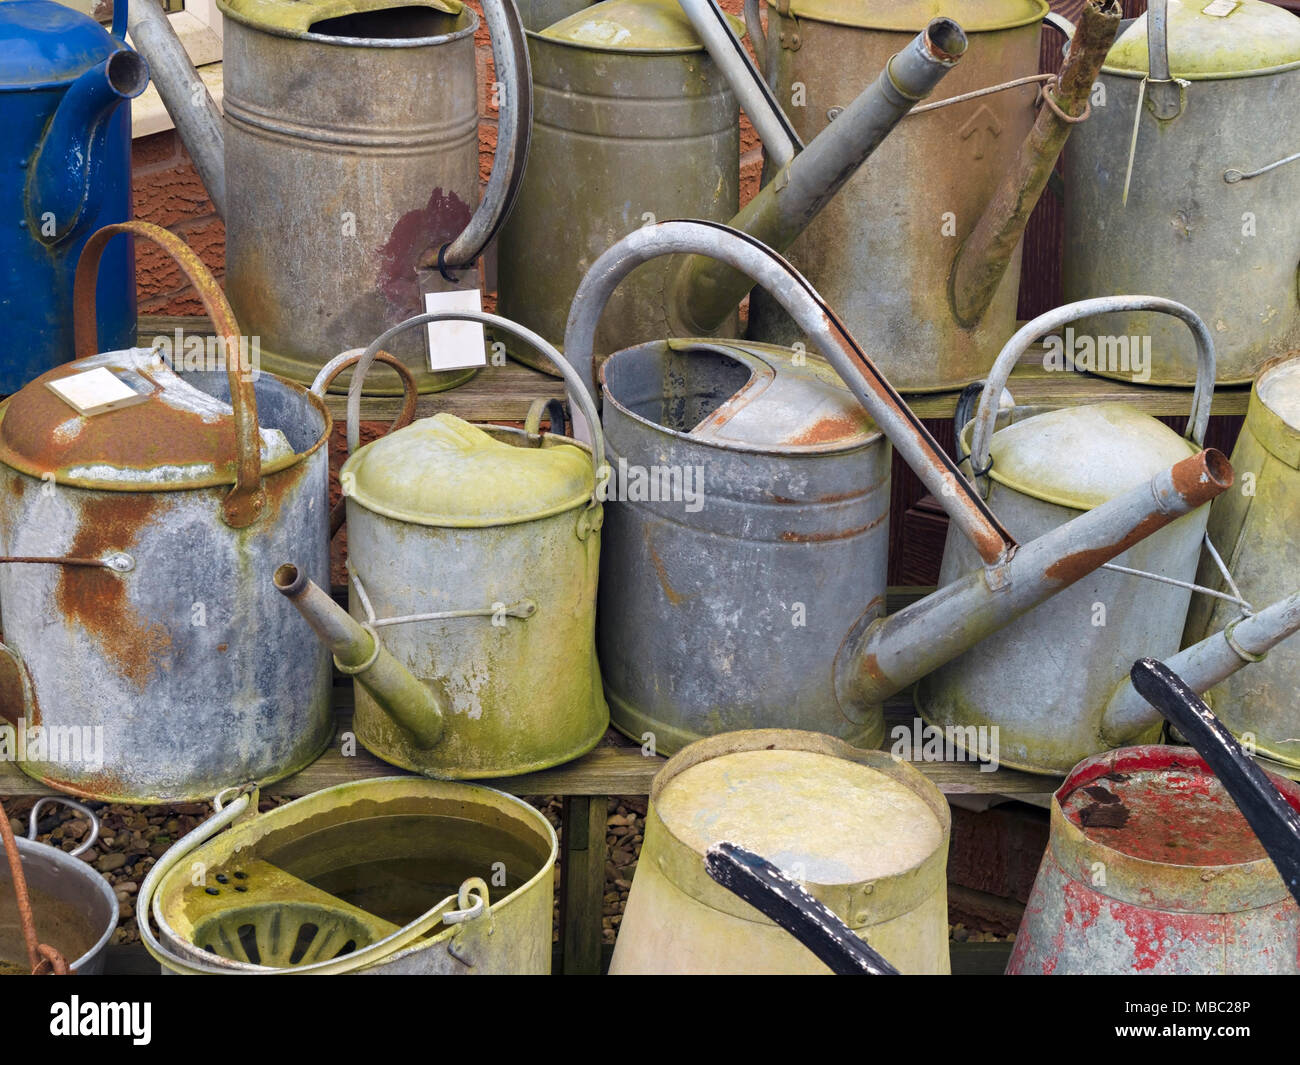 Old zinc galvanised metal garden watering cans for sale in reclamation yard, Garden Classics, Ashwell, Rutland, England, UK - Stock Image